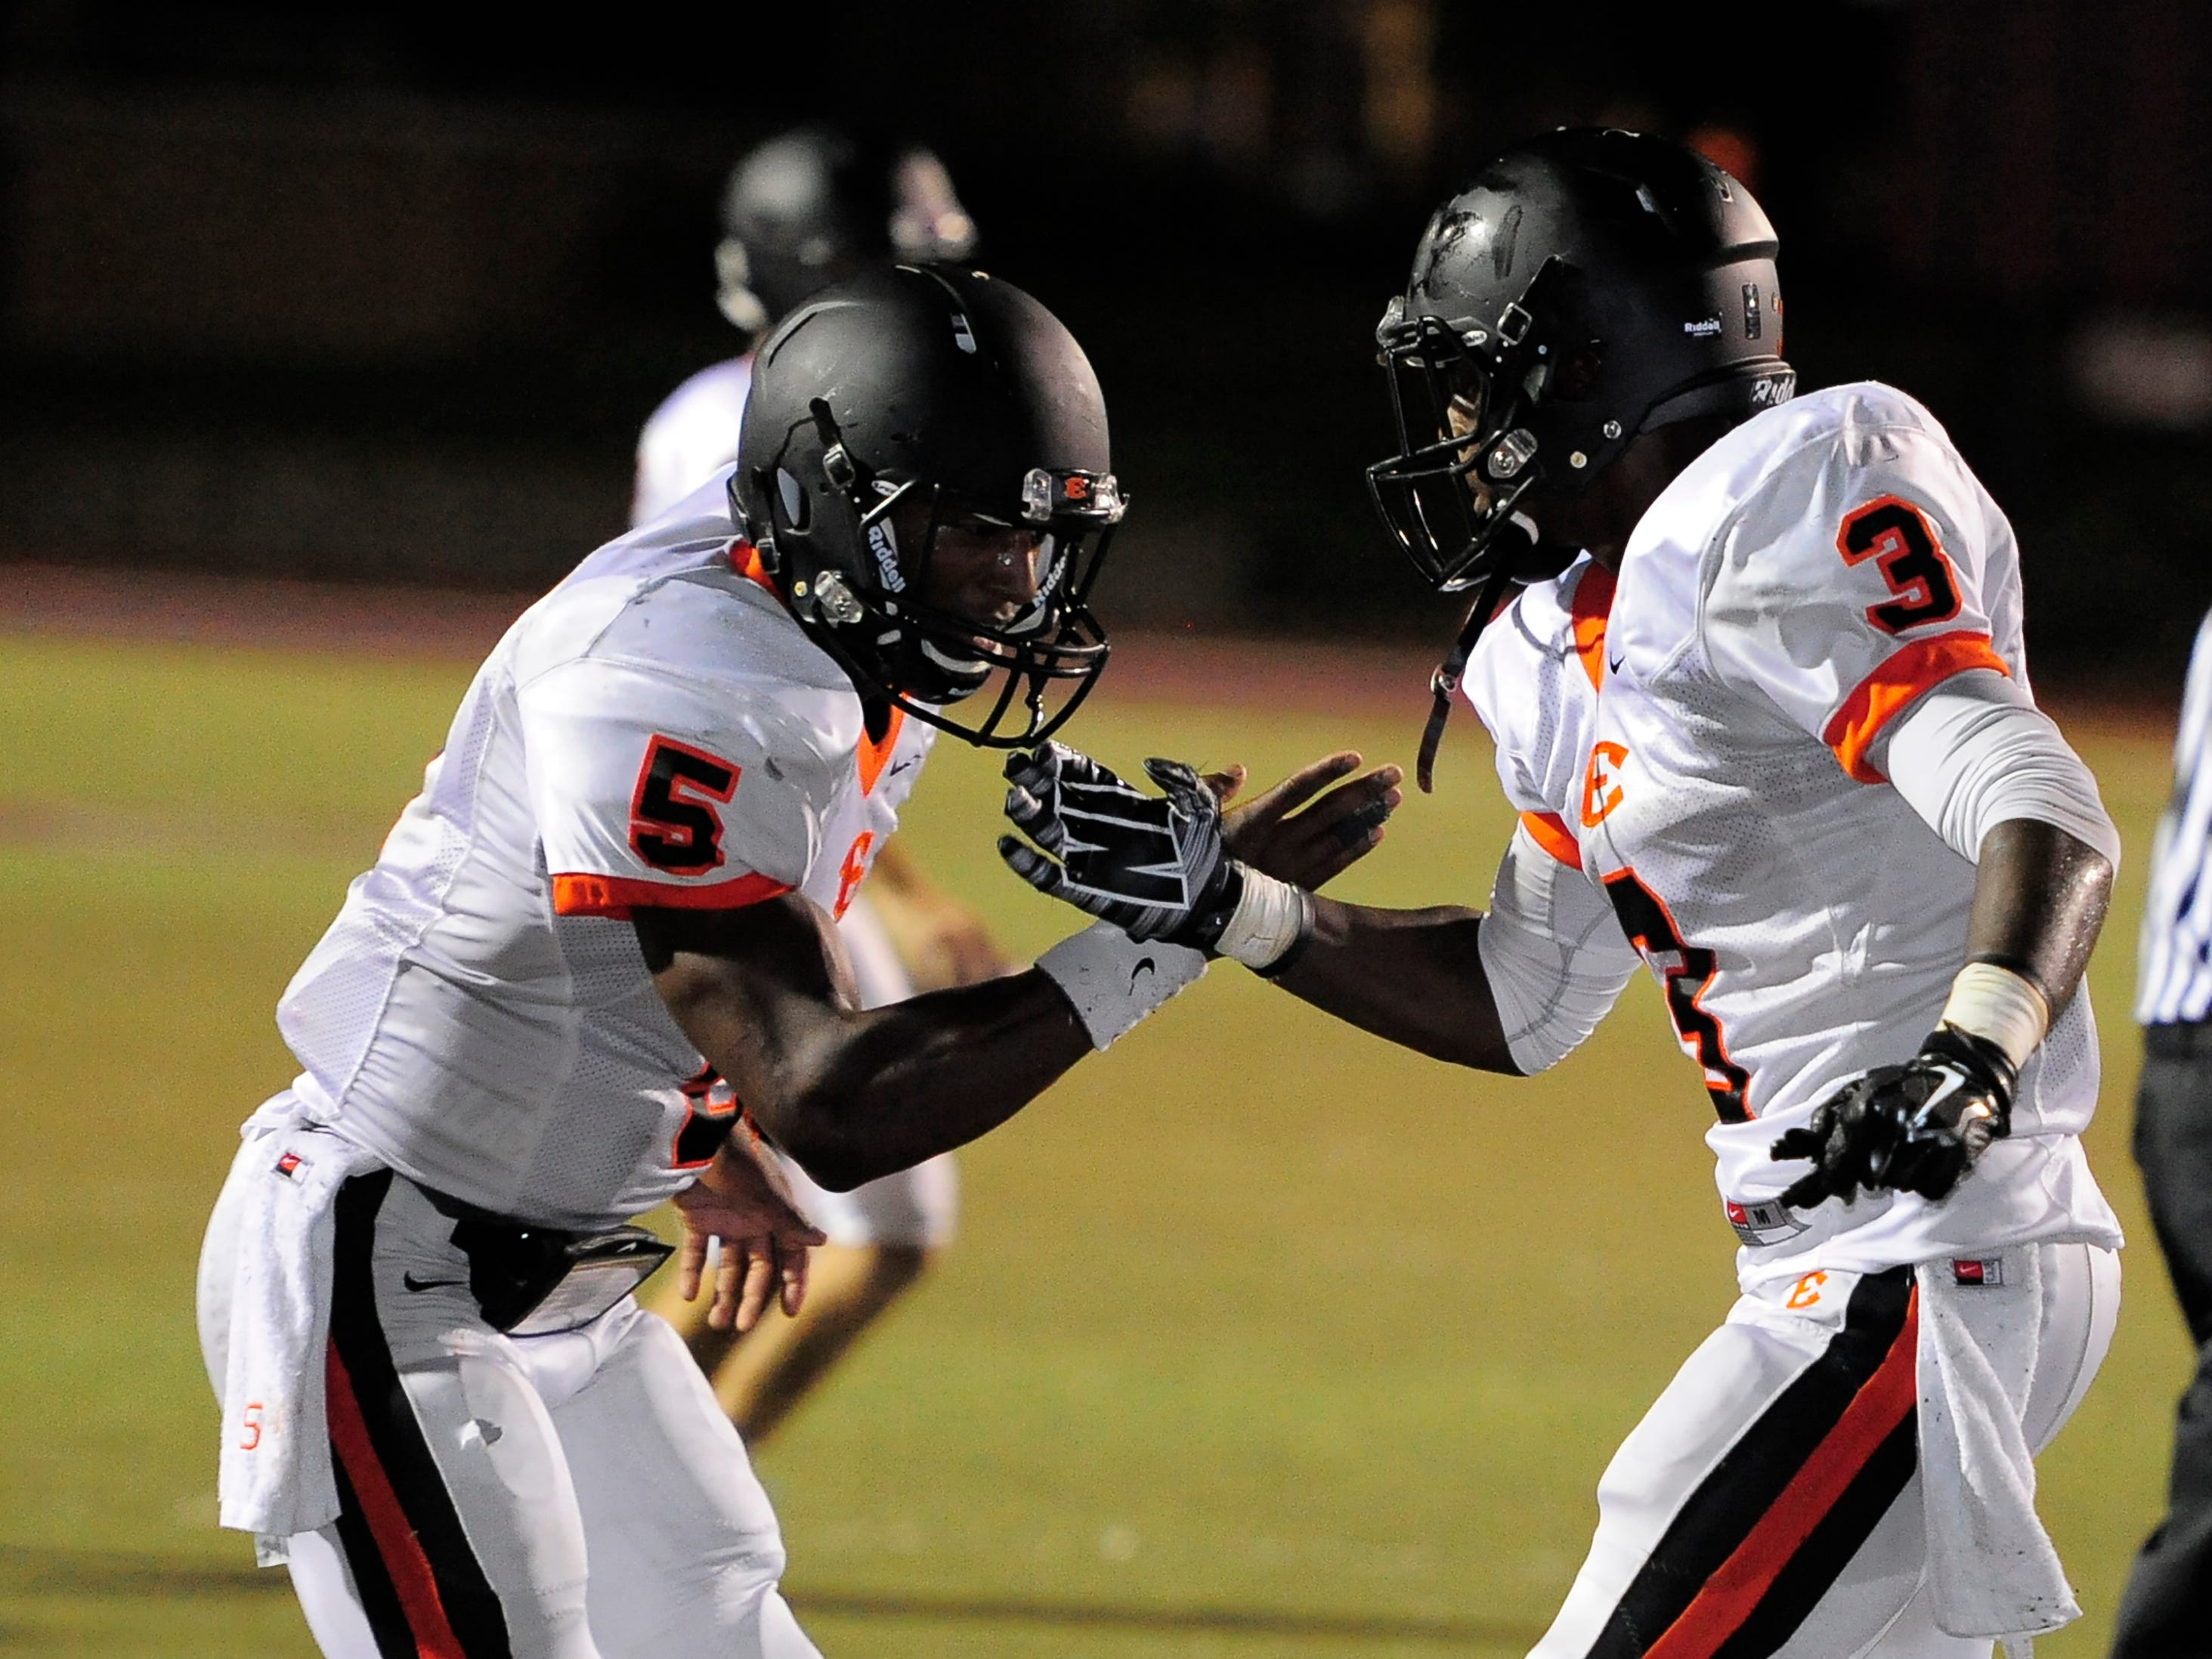 Quarterback P.J. Settles (5) and running back Darius Morehead (3) have helped Ensworth to a 6-1 start to the season.